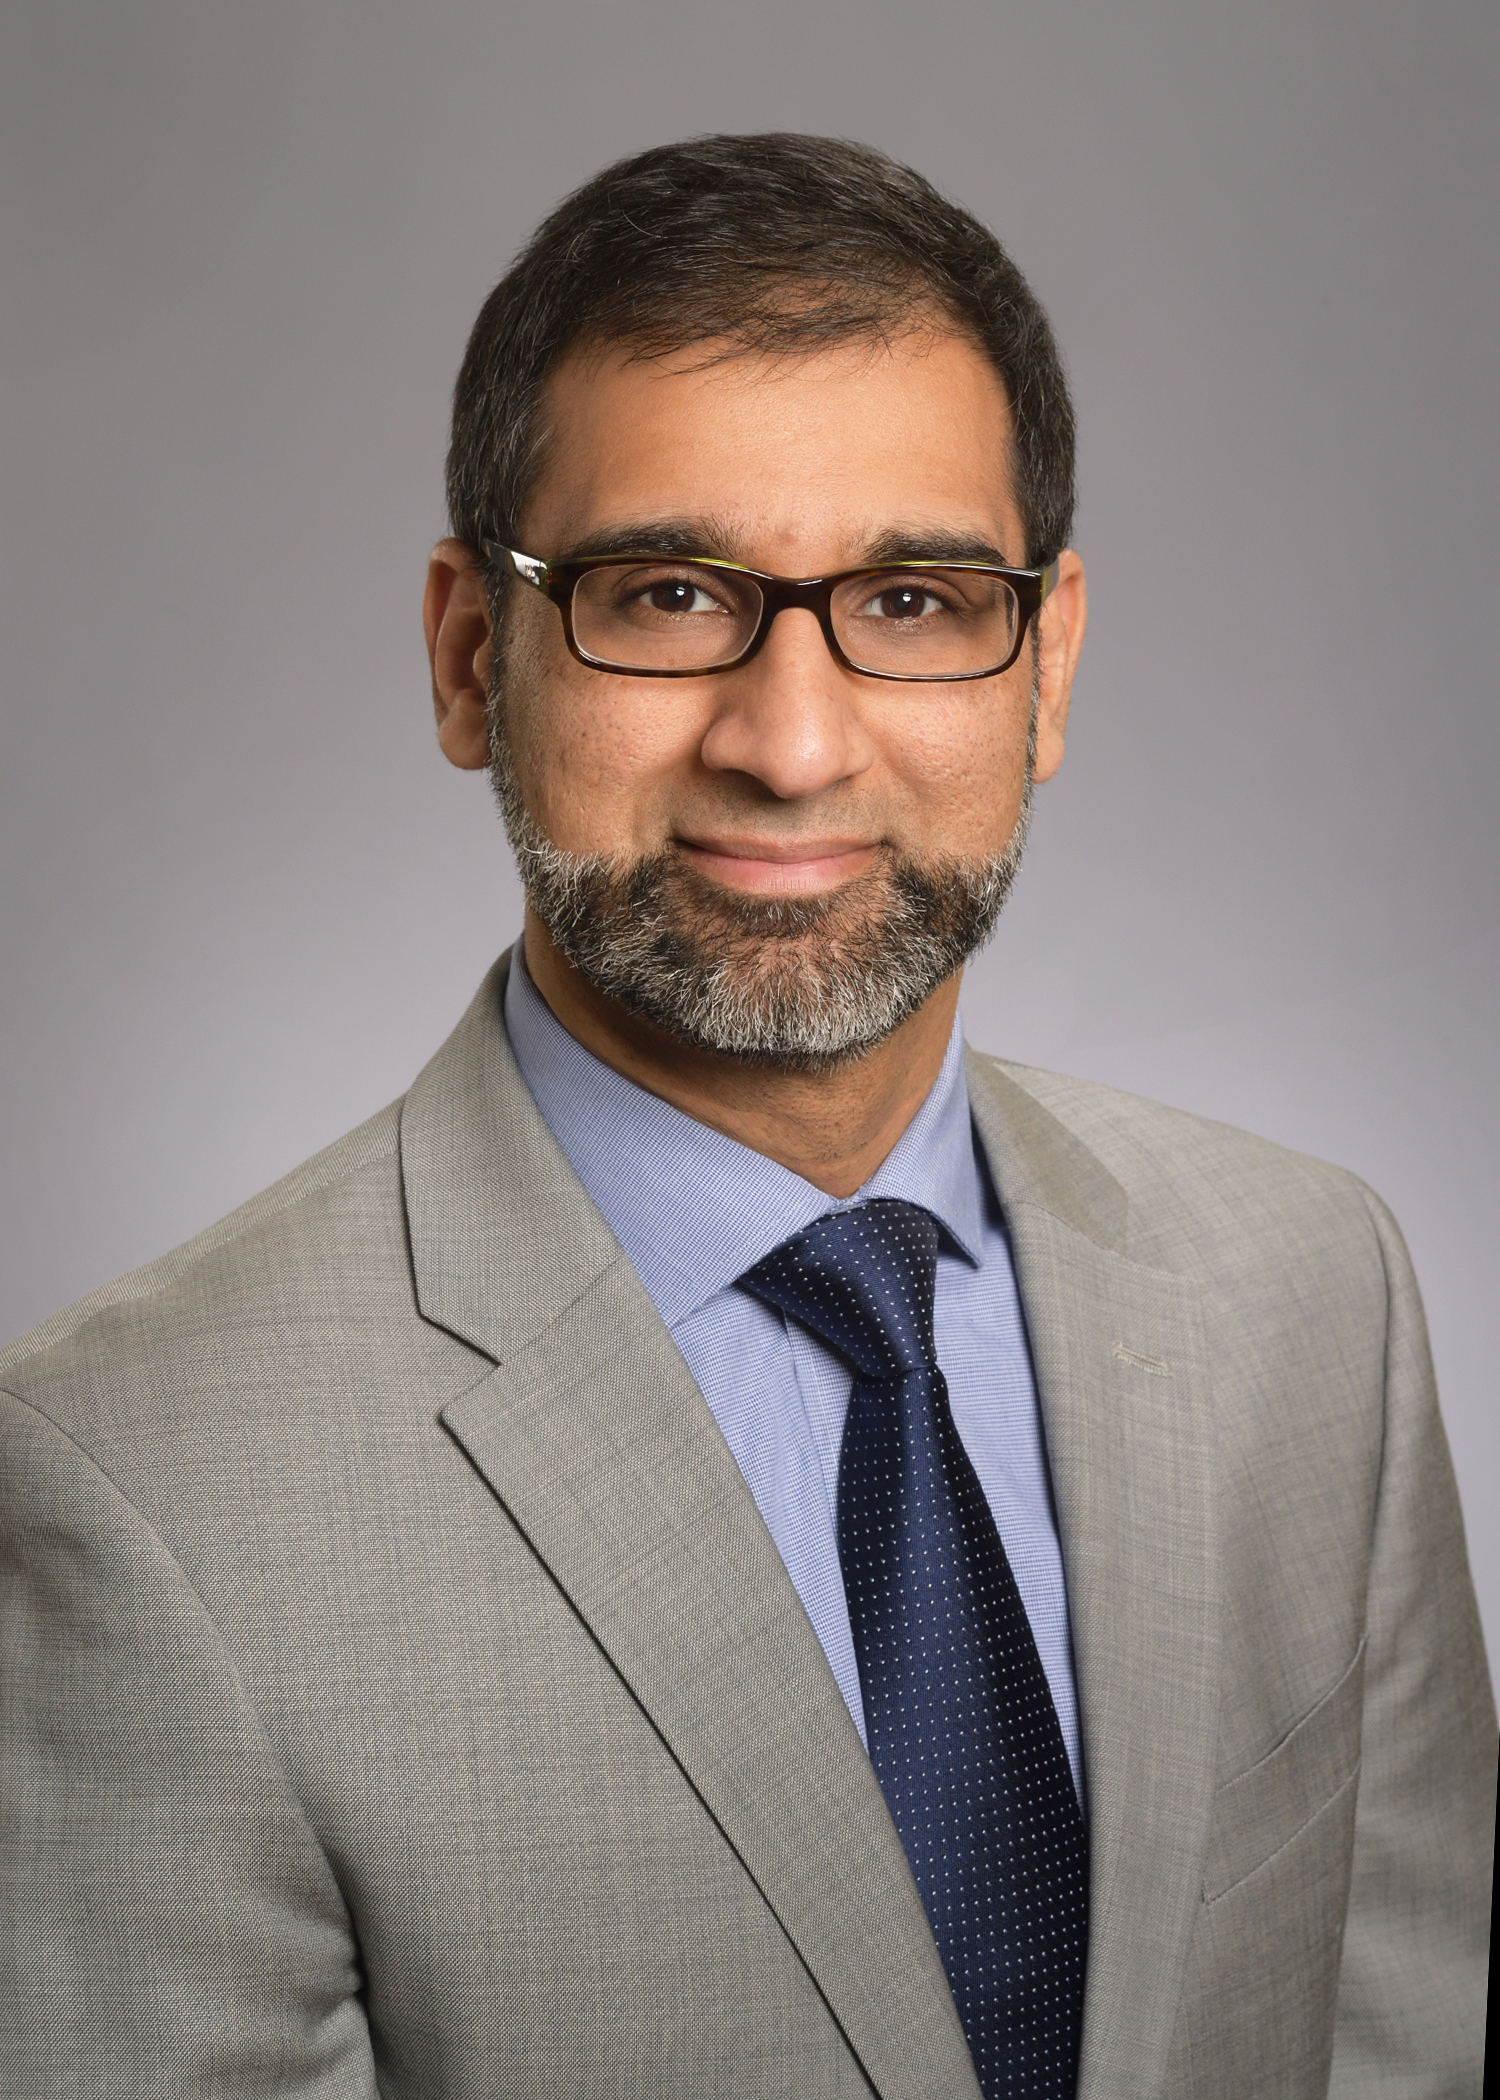 Nabile Safdar, MD,  Associate Chief Medical Information Officer, Emory Healthcare, Vice Chair for Imaging Informatics, Department of Radiology, Emory University